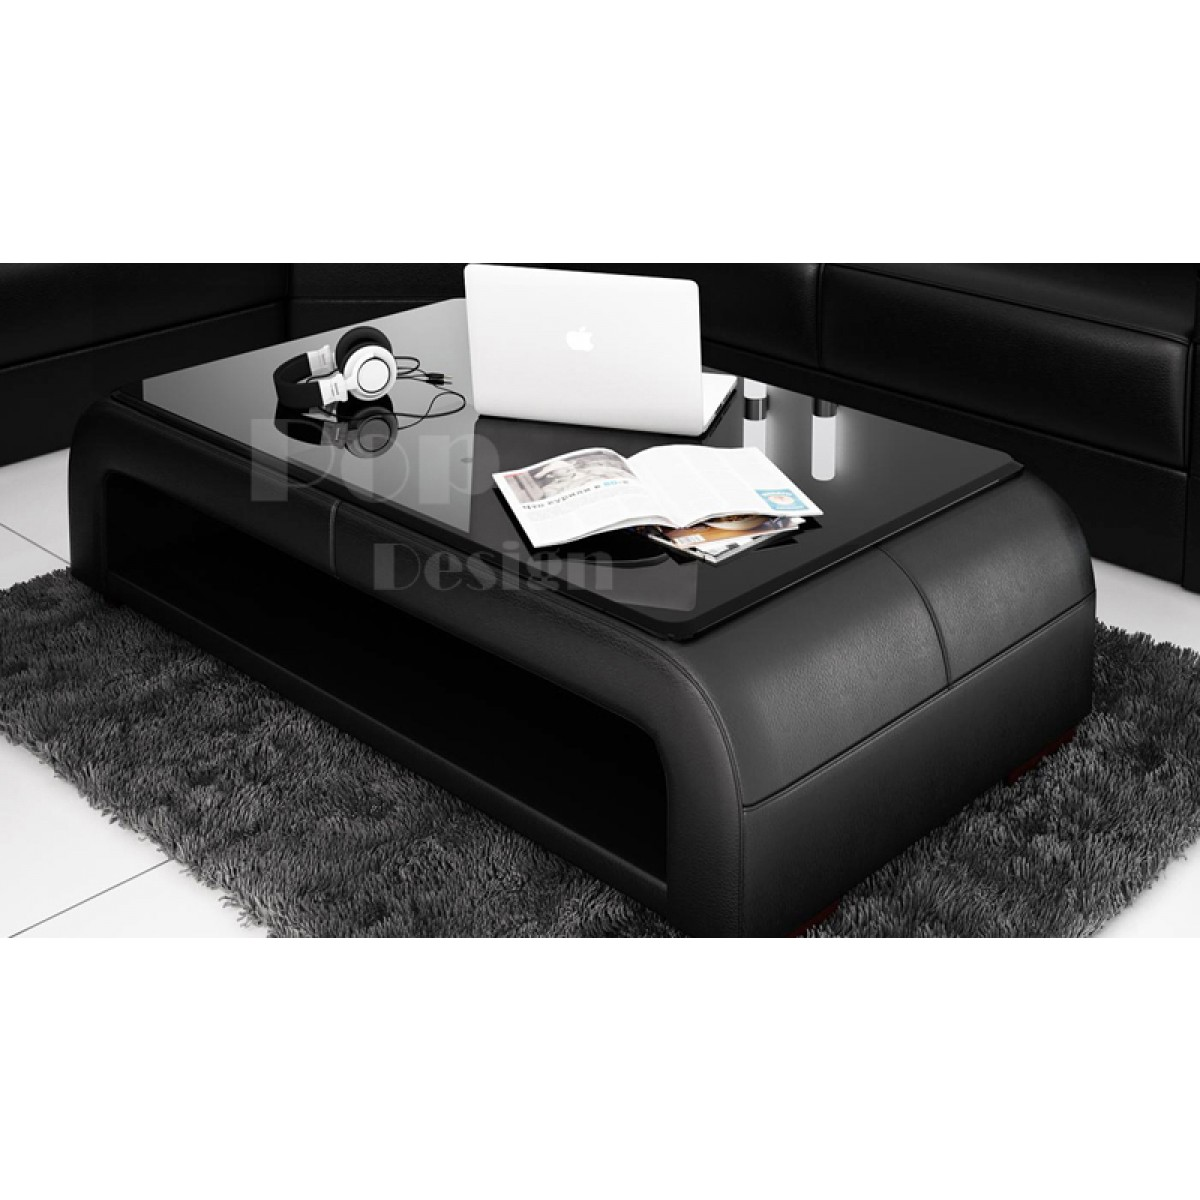 Table basse costa personnalisable pop for Table basse personnalisable